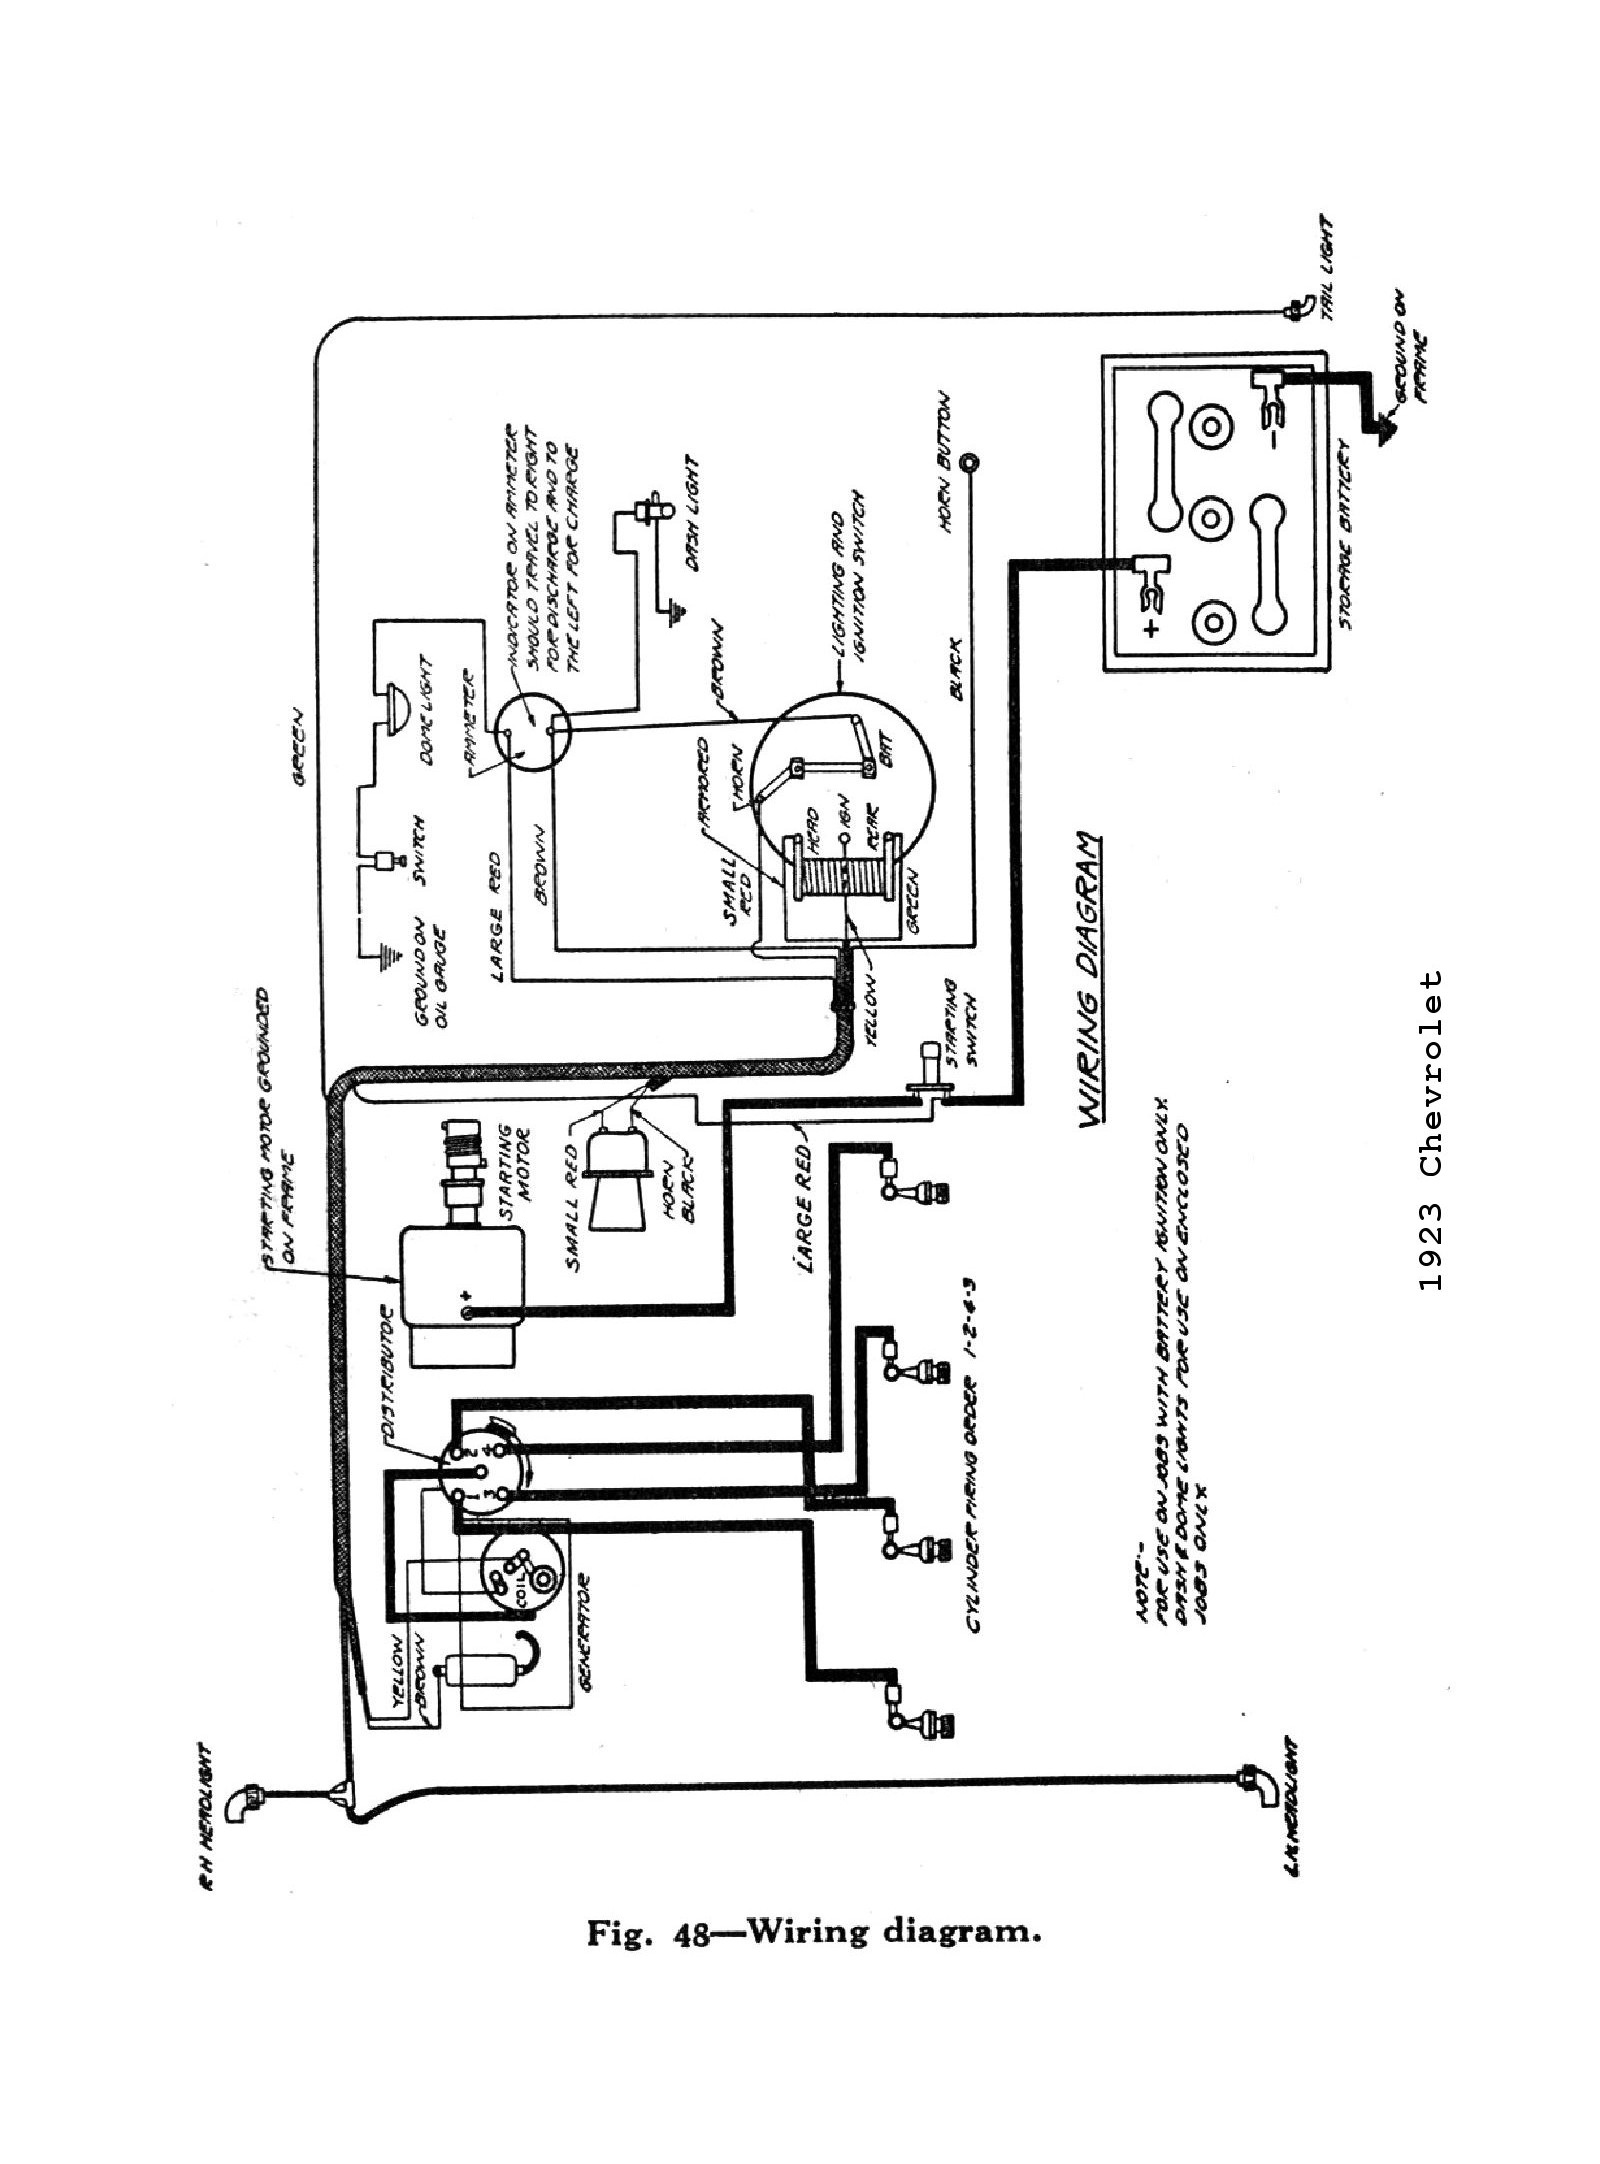 1941 Plymouth Wiring Diagram Data Schema 1930